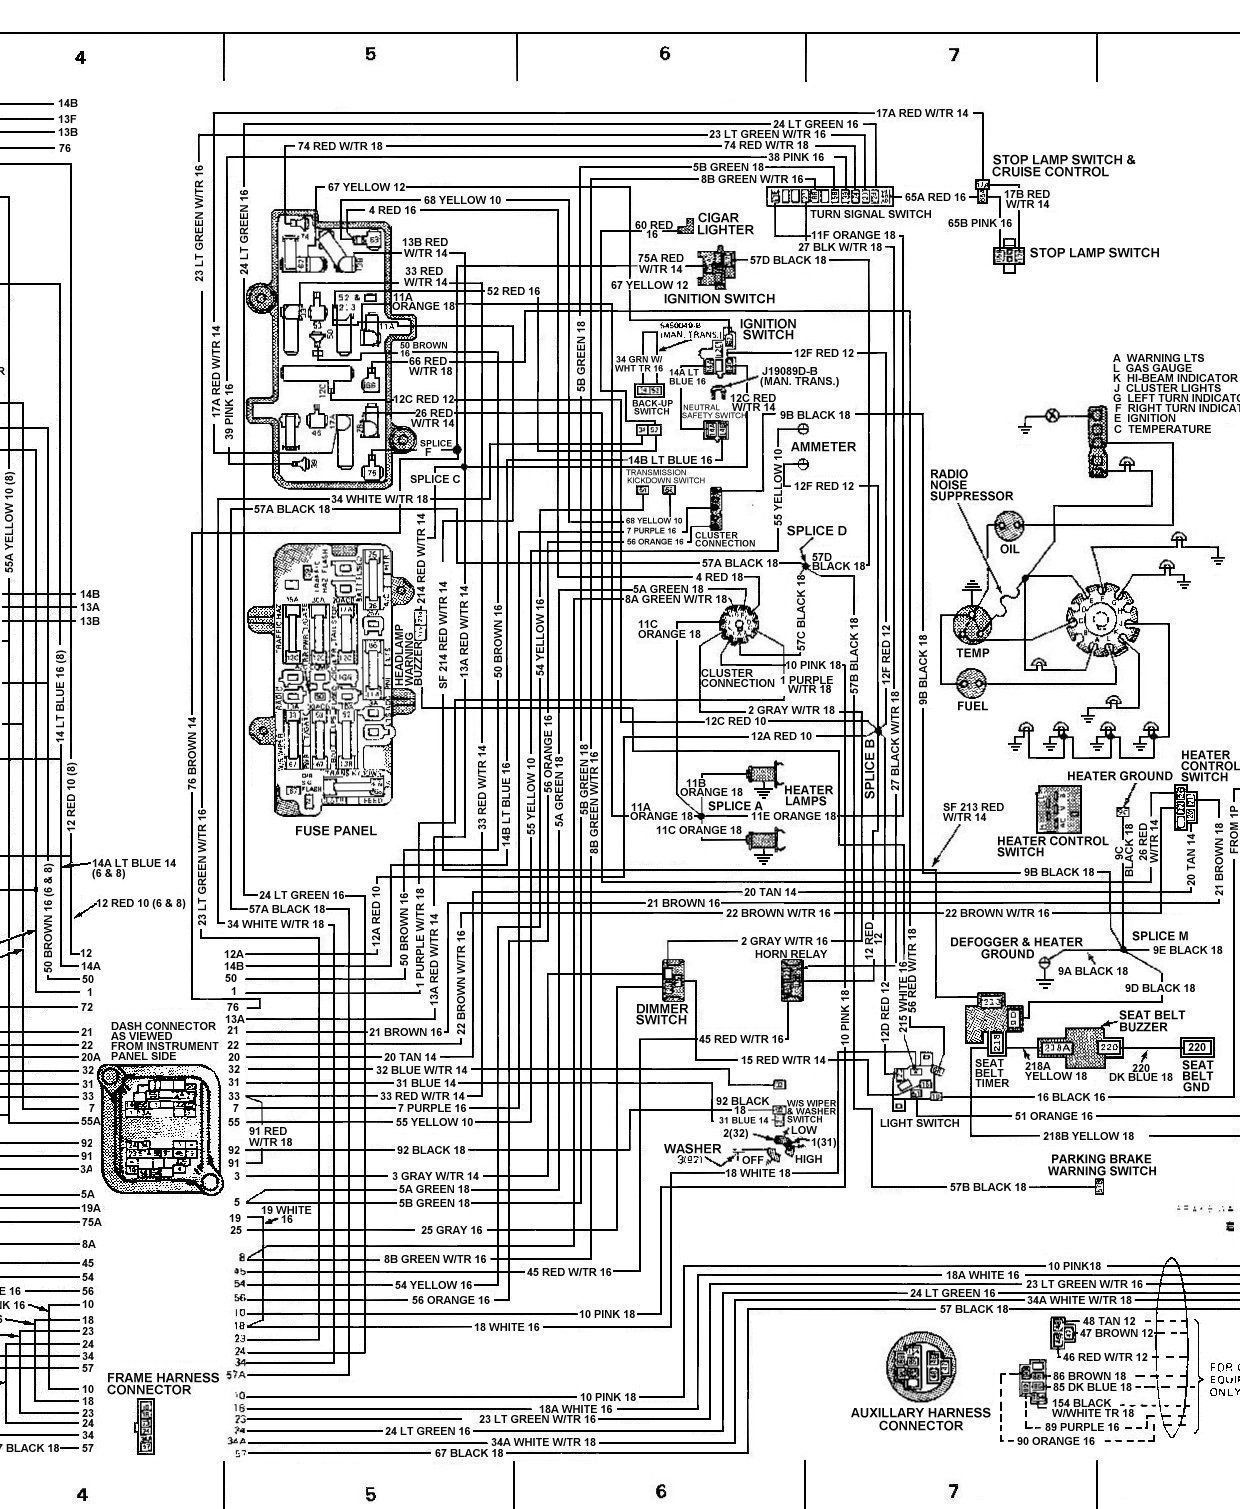 VW Jetta Wiring Diagram 2.8 1998 | eBooks | Automotive